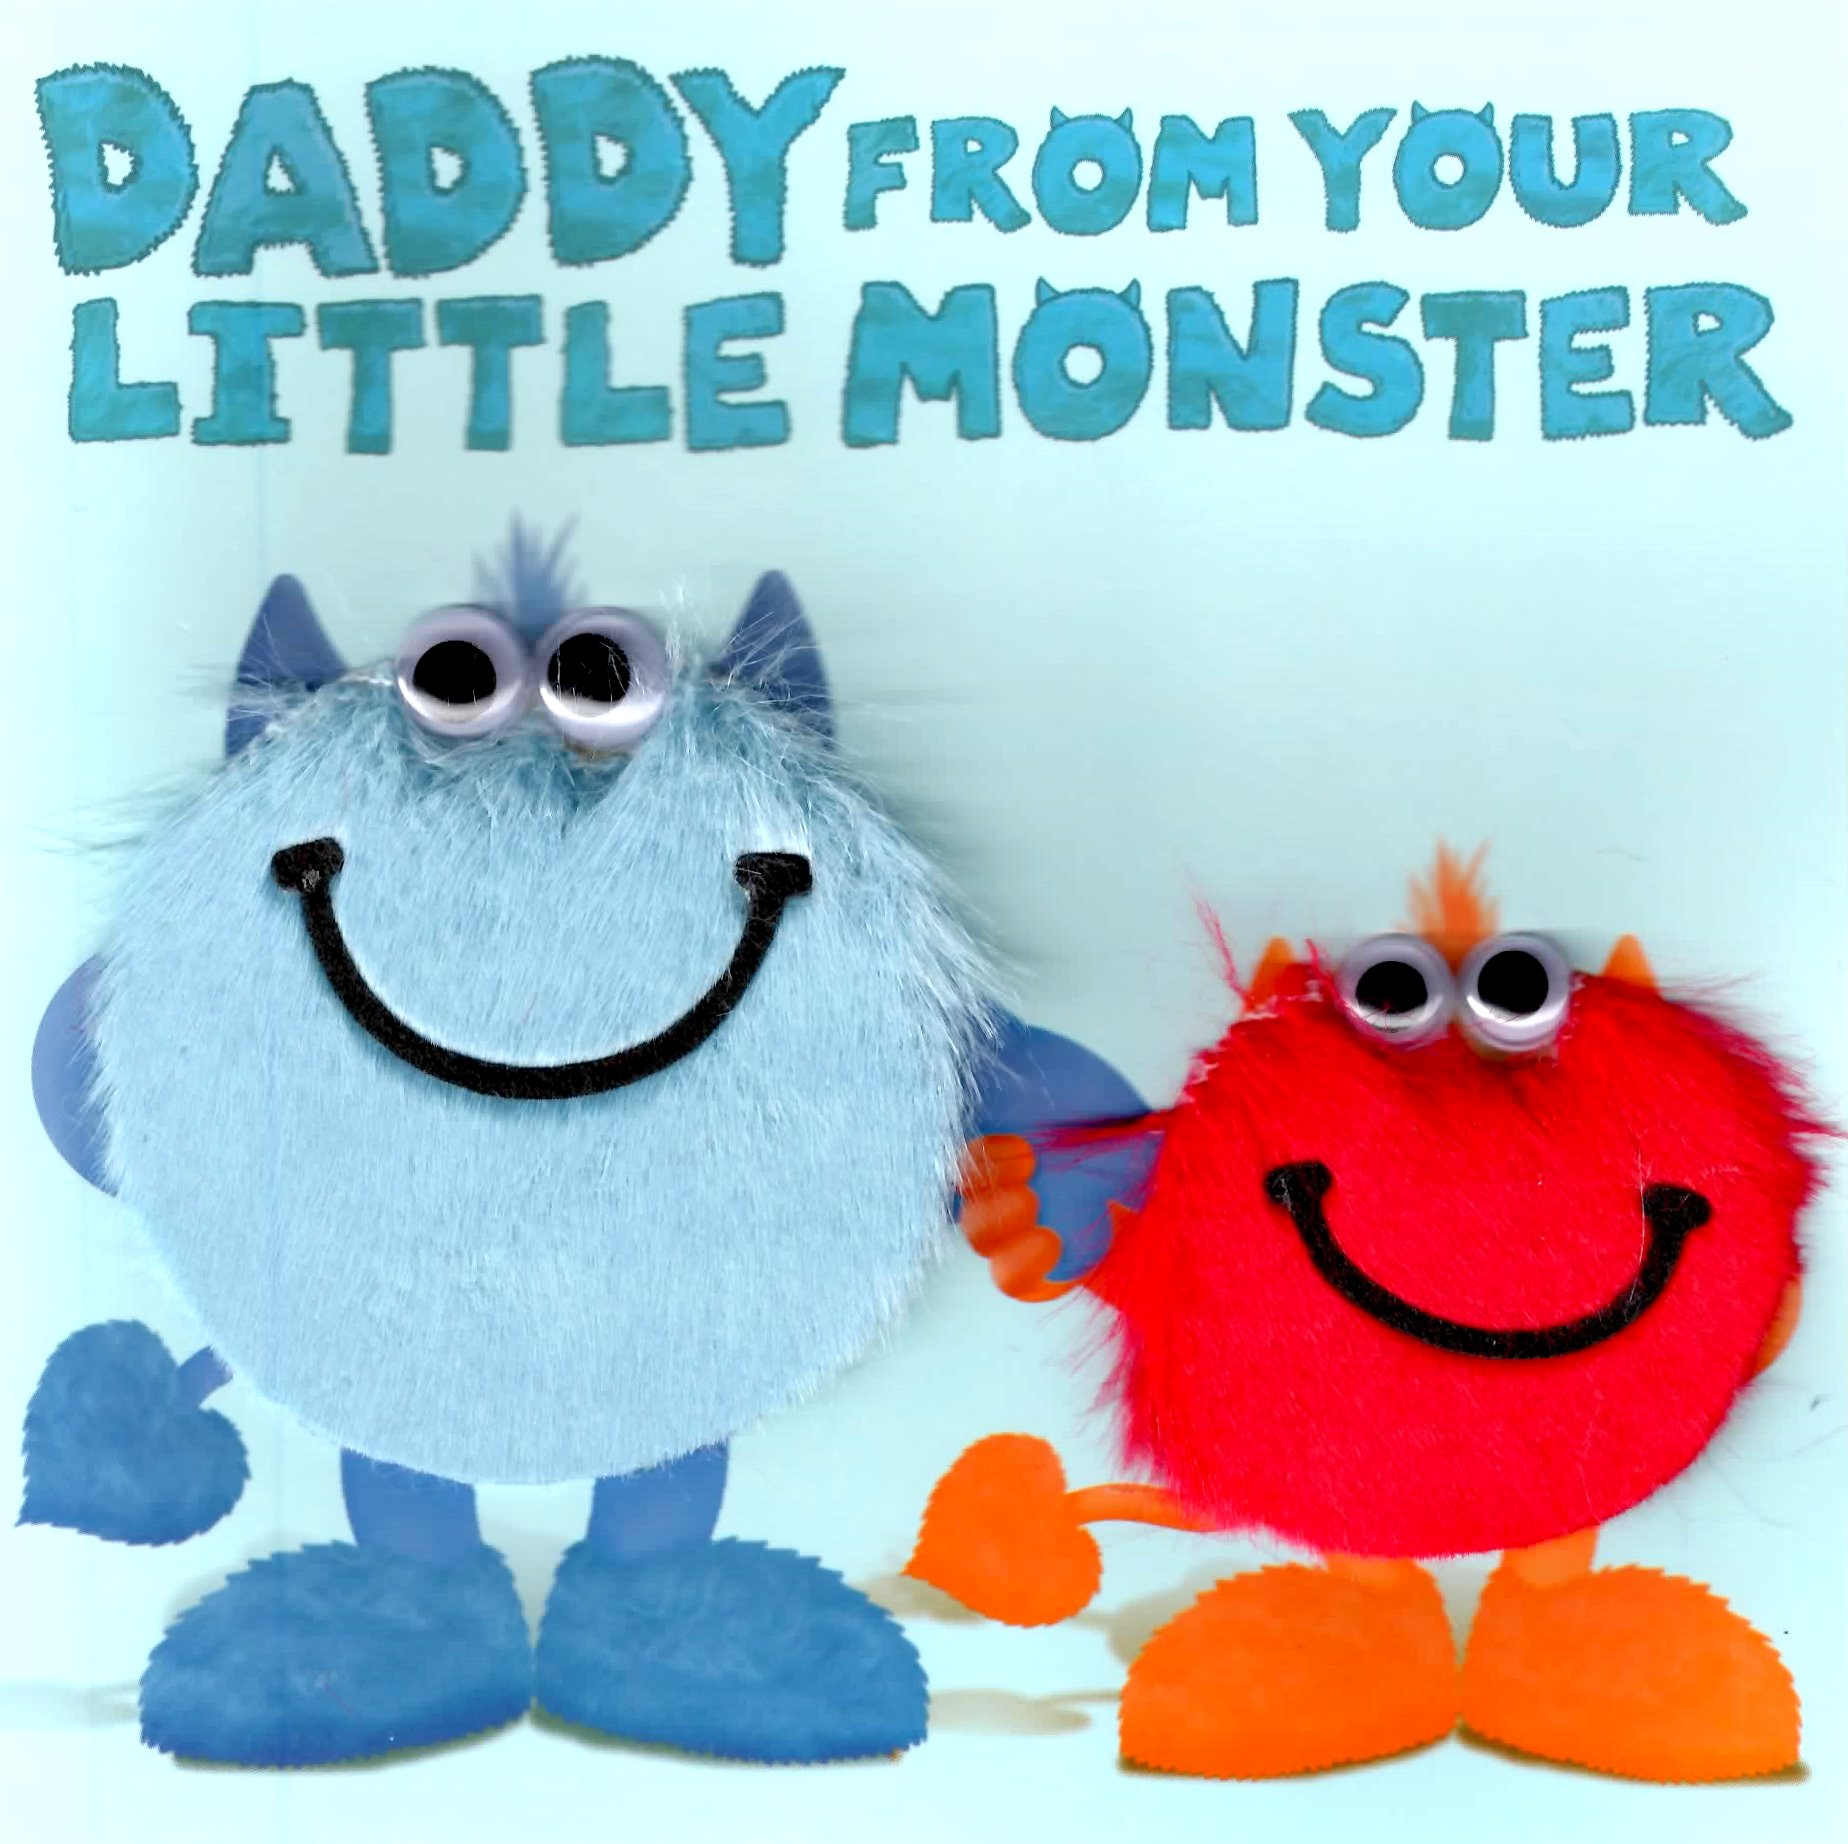 To daddy from your little monster happy birthday greeting card to daddy from your little monster happy birthday greeting card m4hsunfo